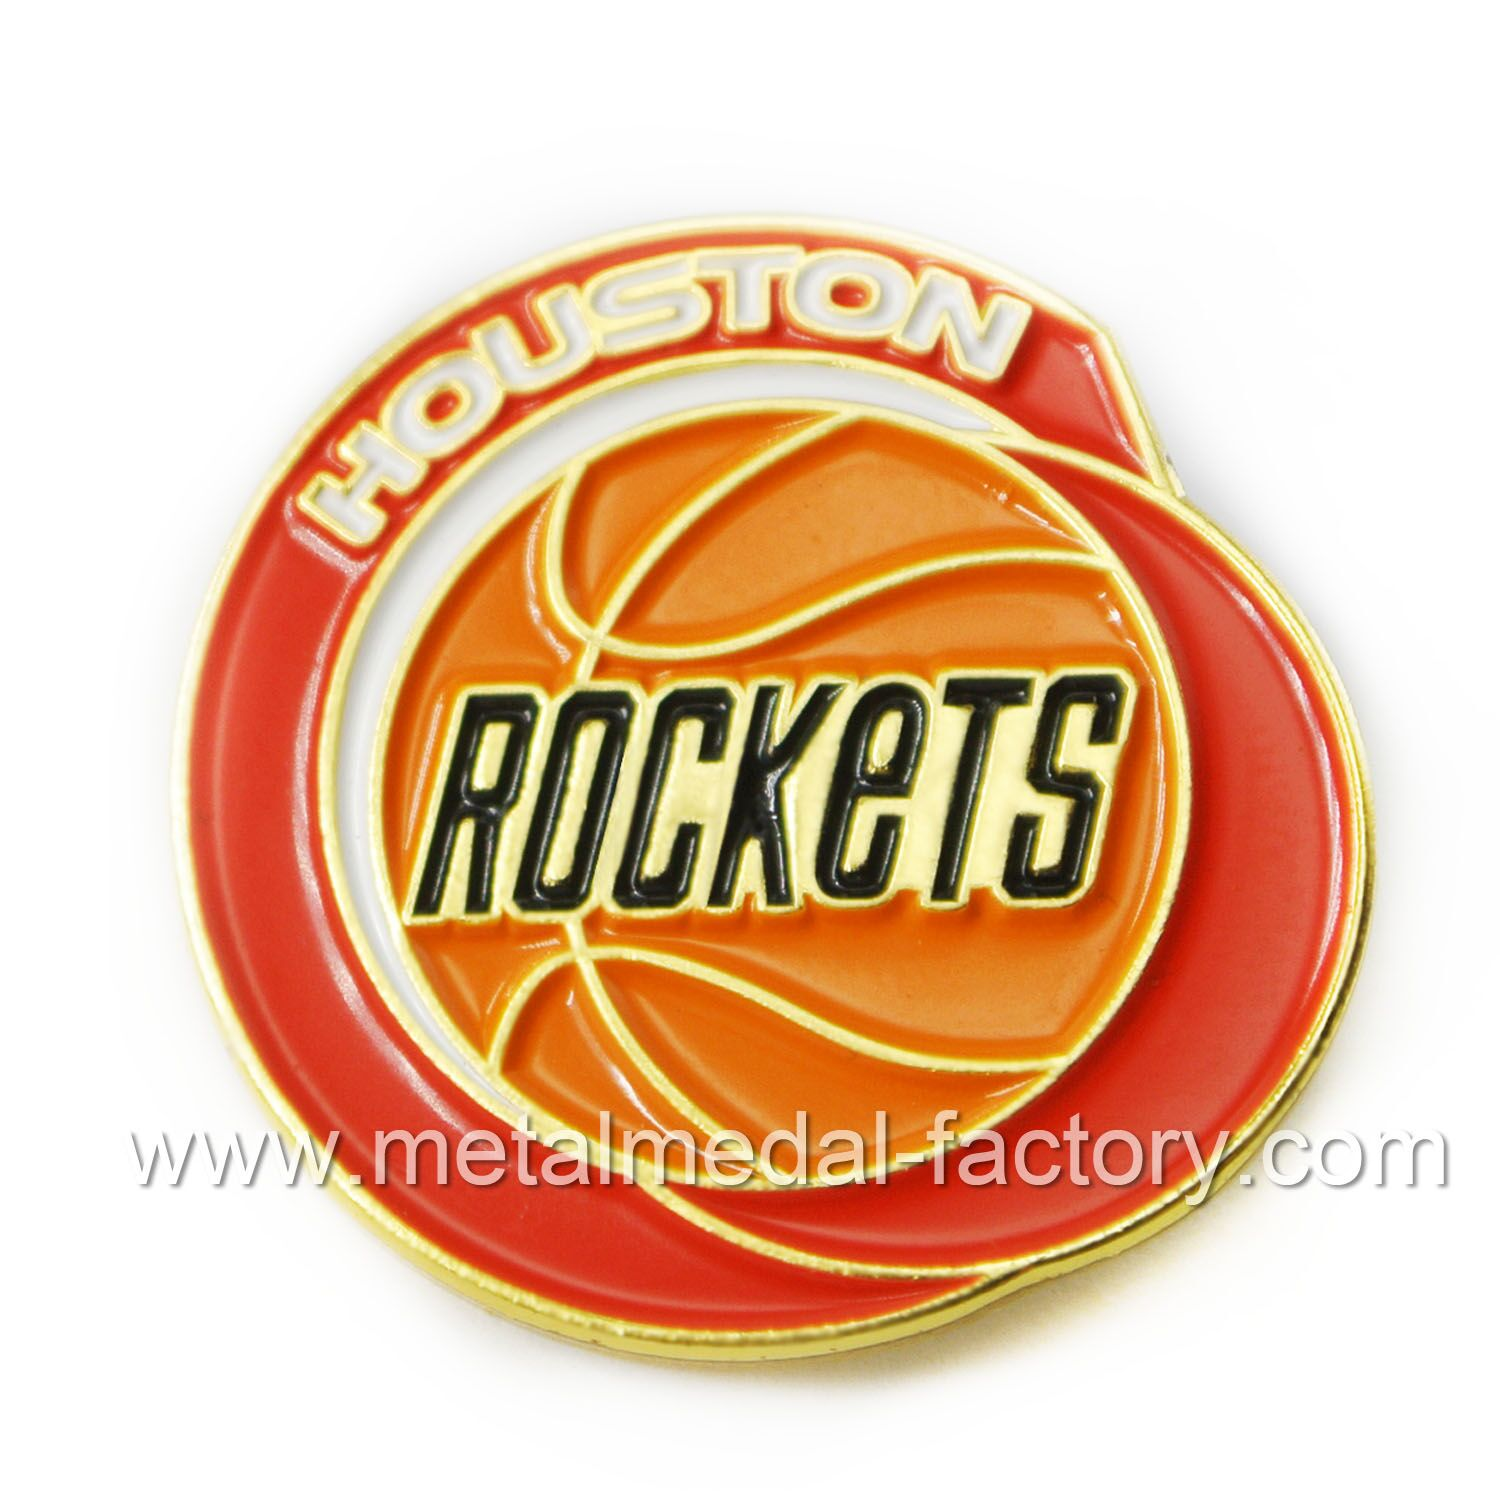 Houston Rockets: we are very satisfied with their efficient service and high quality pins